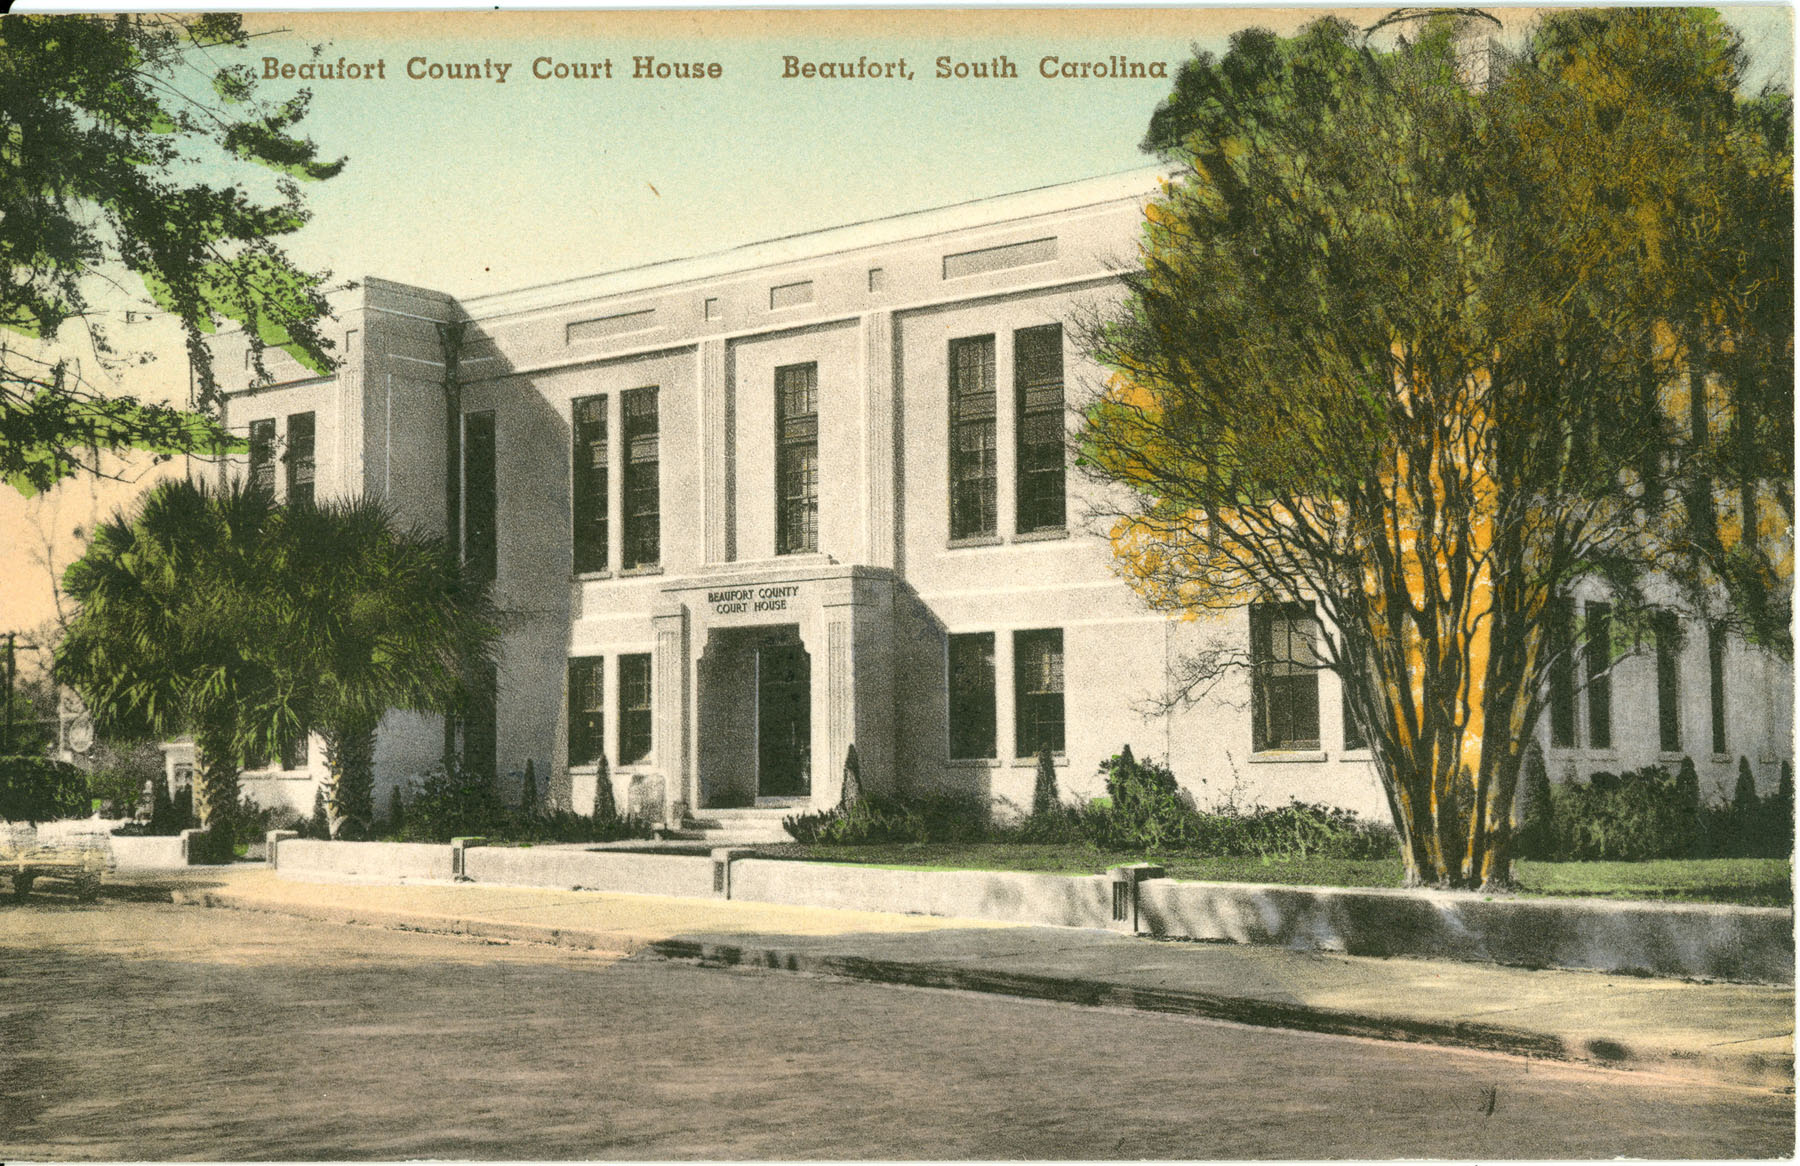 Beaufort County Court House